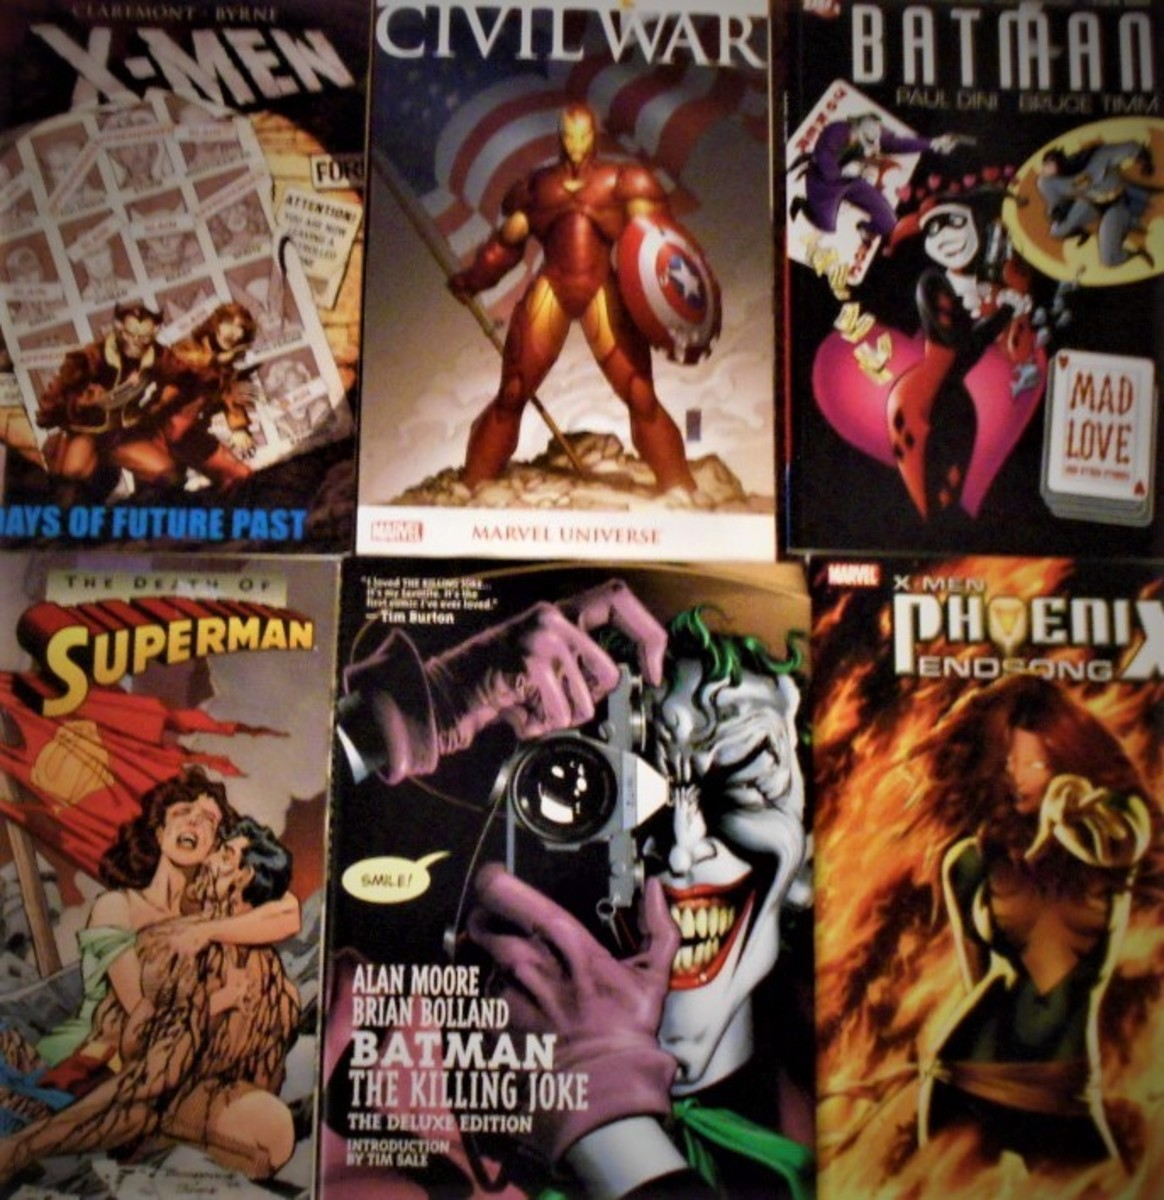 A sample of DC and Marvel graphic novels